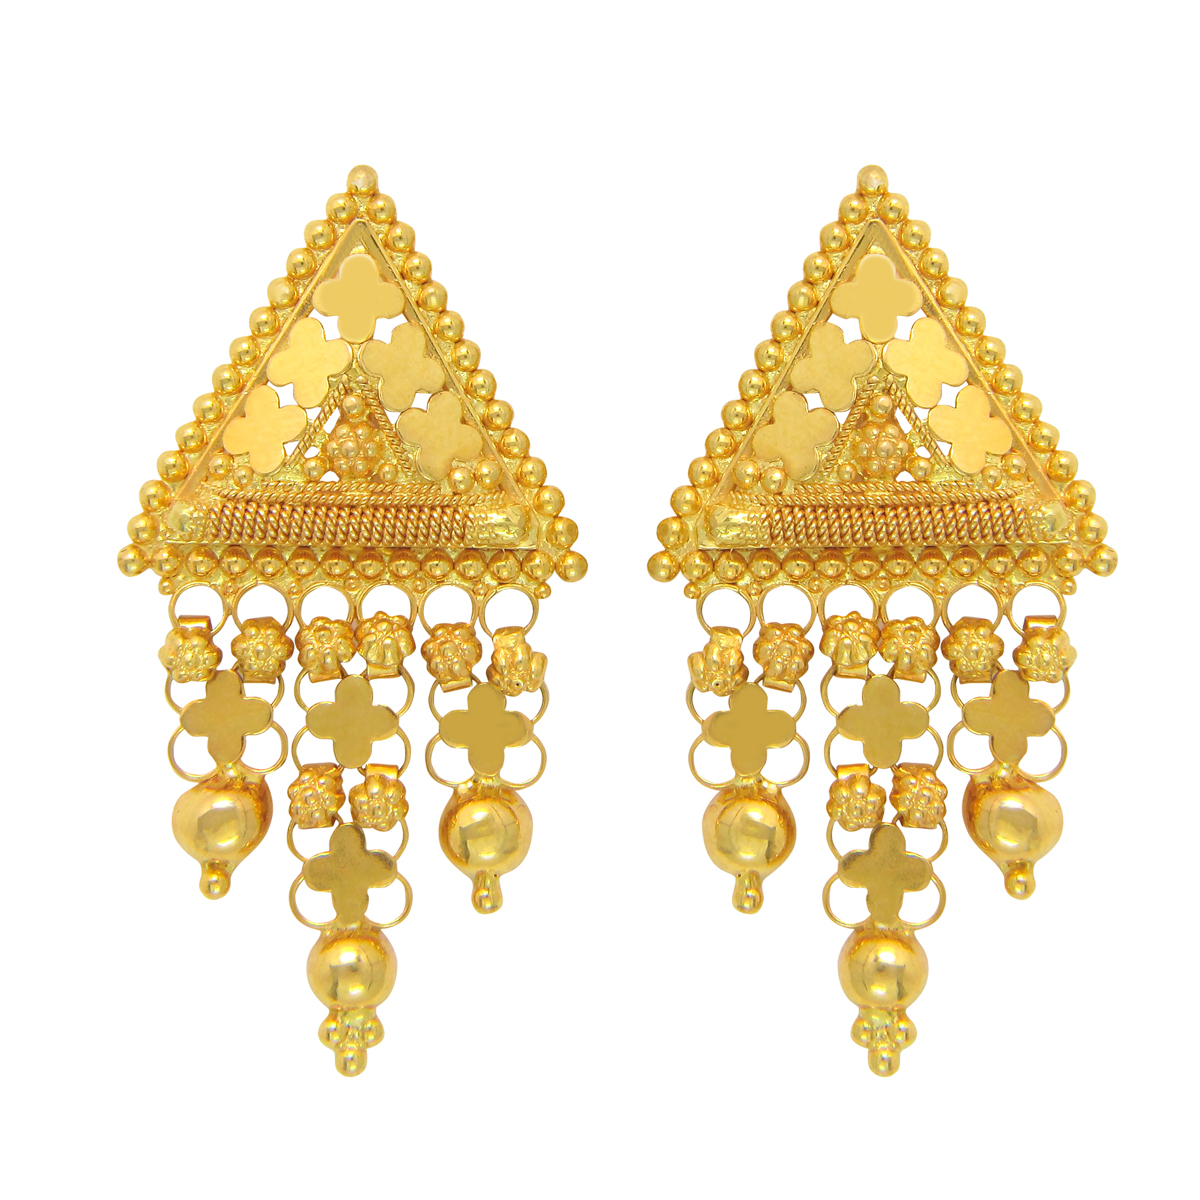 Popley 22Kt Gold Bandhan Earring - A68